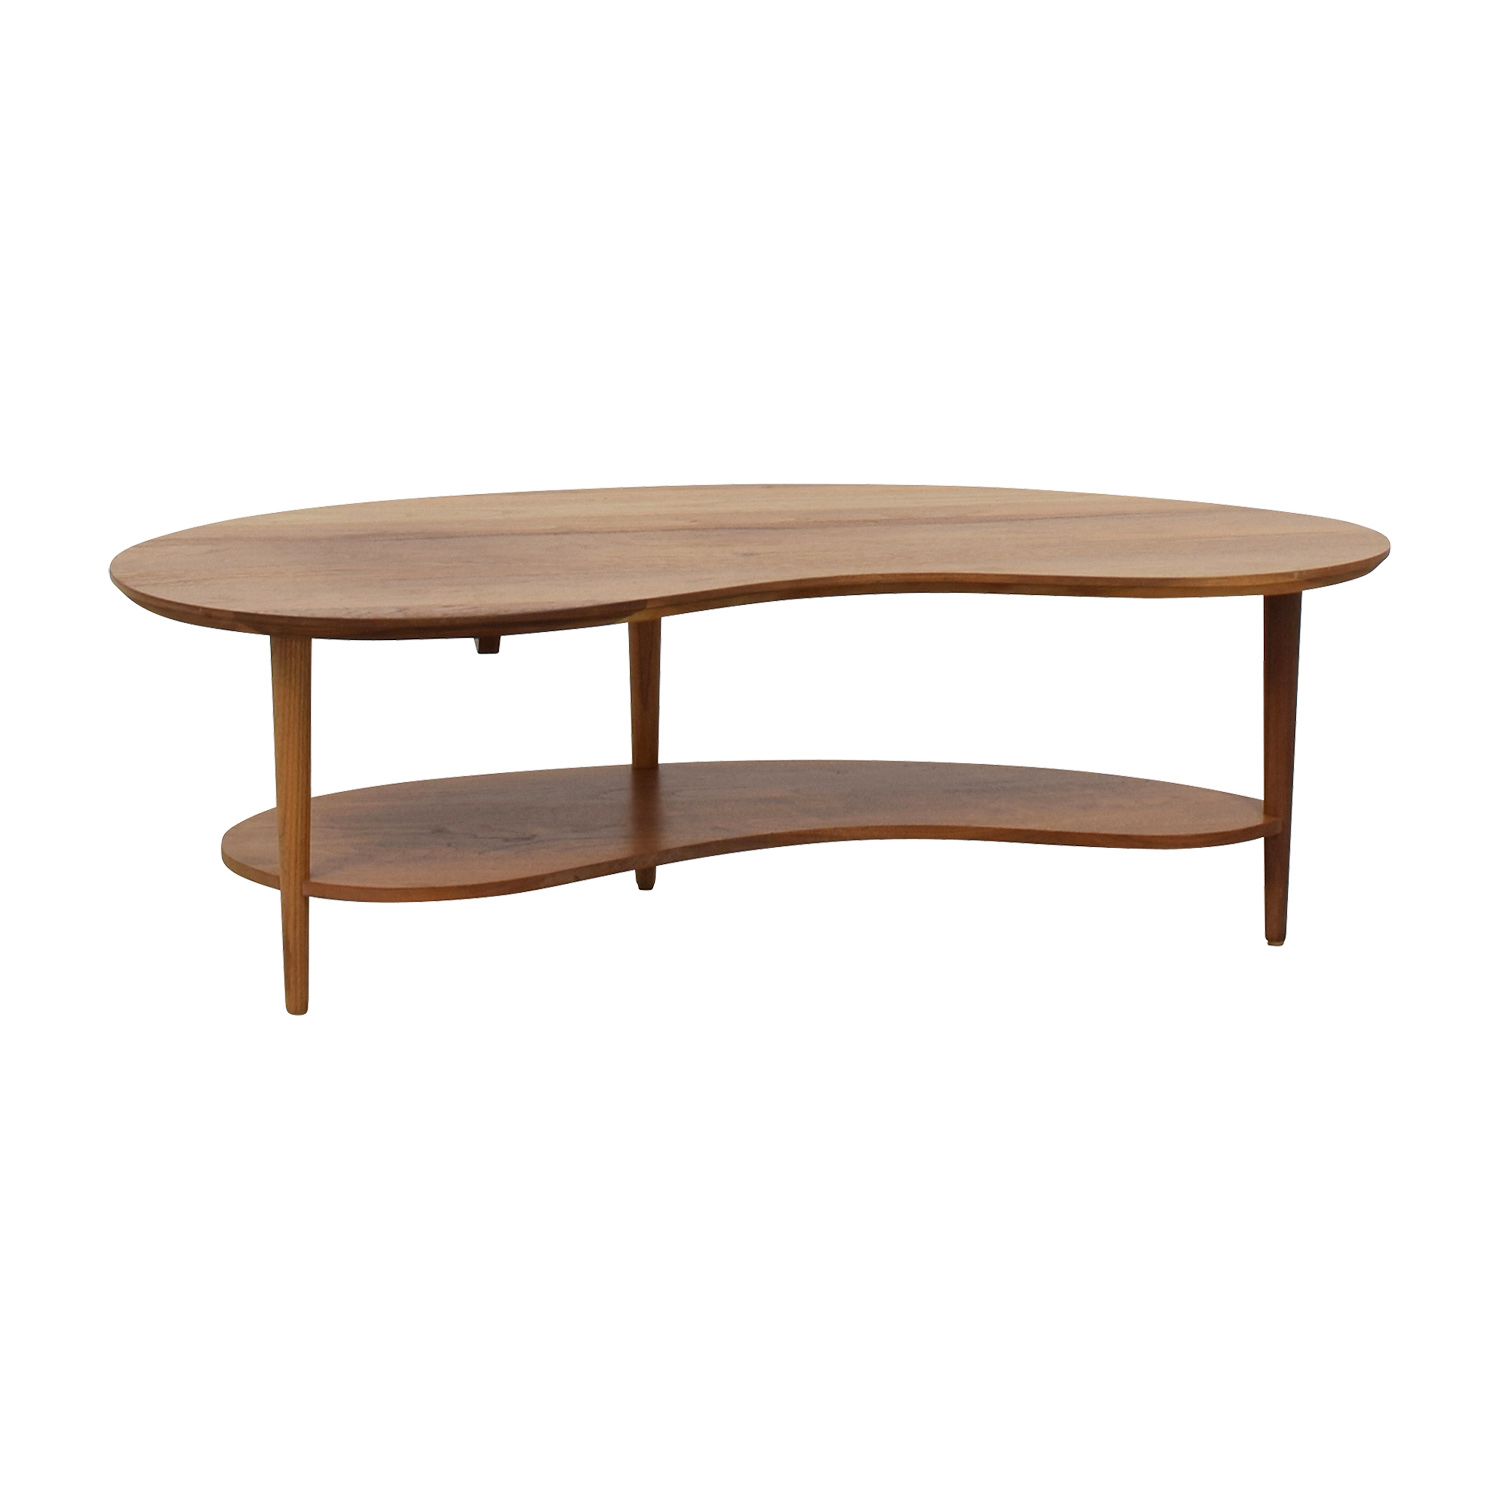 Room & Board Room & Board Stafford Cherry Wood Coffee Table price